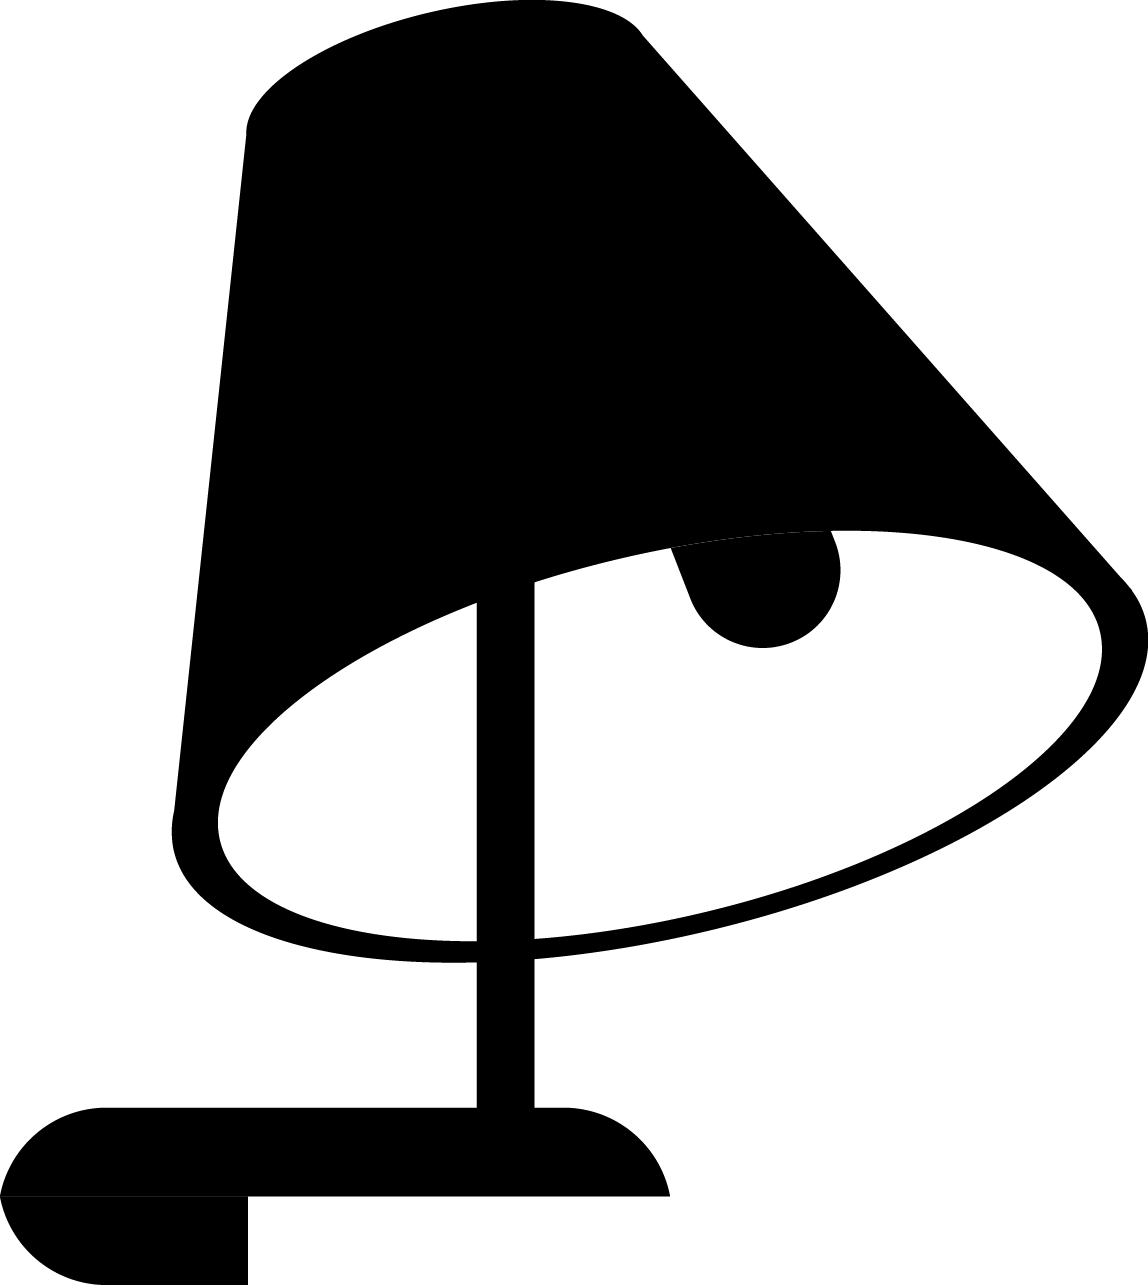 Lamp Silhouette png